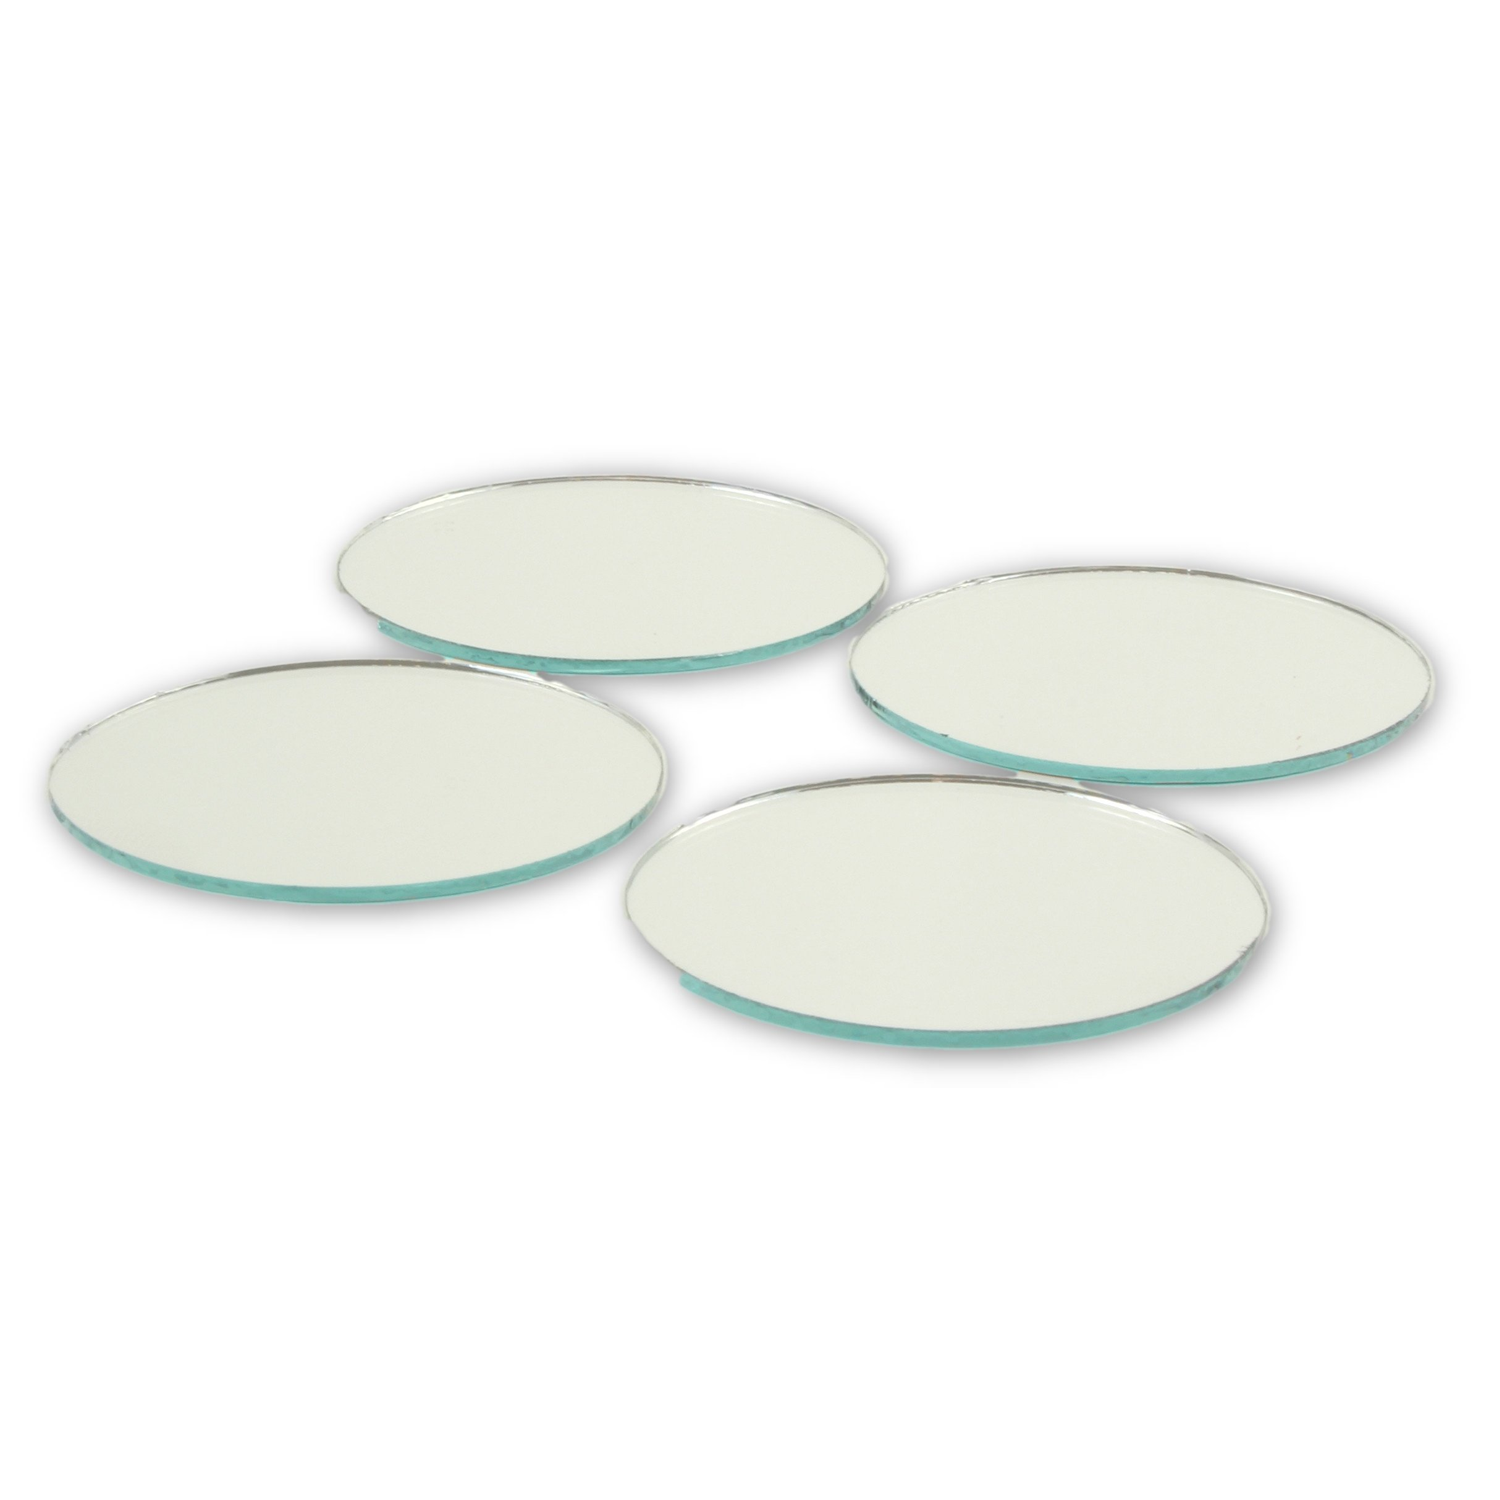 Small Mirror Pieces: 2 Inch Glass Craft Mini Small Round Mirrors 24 Pieces